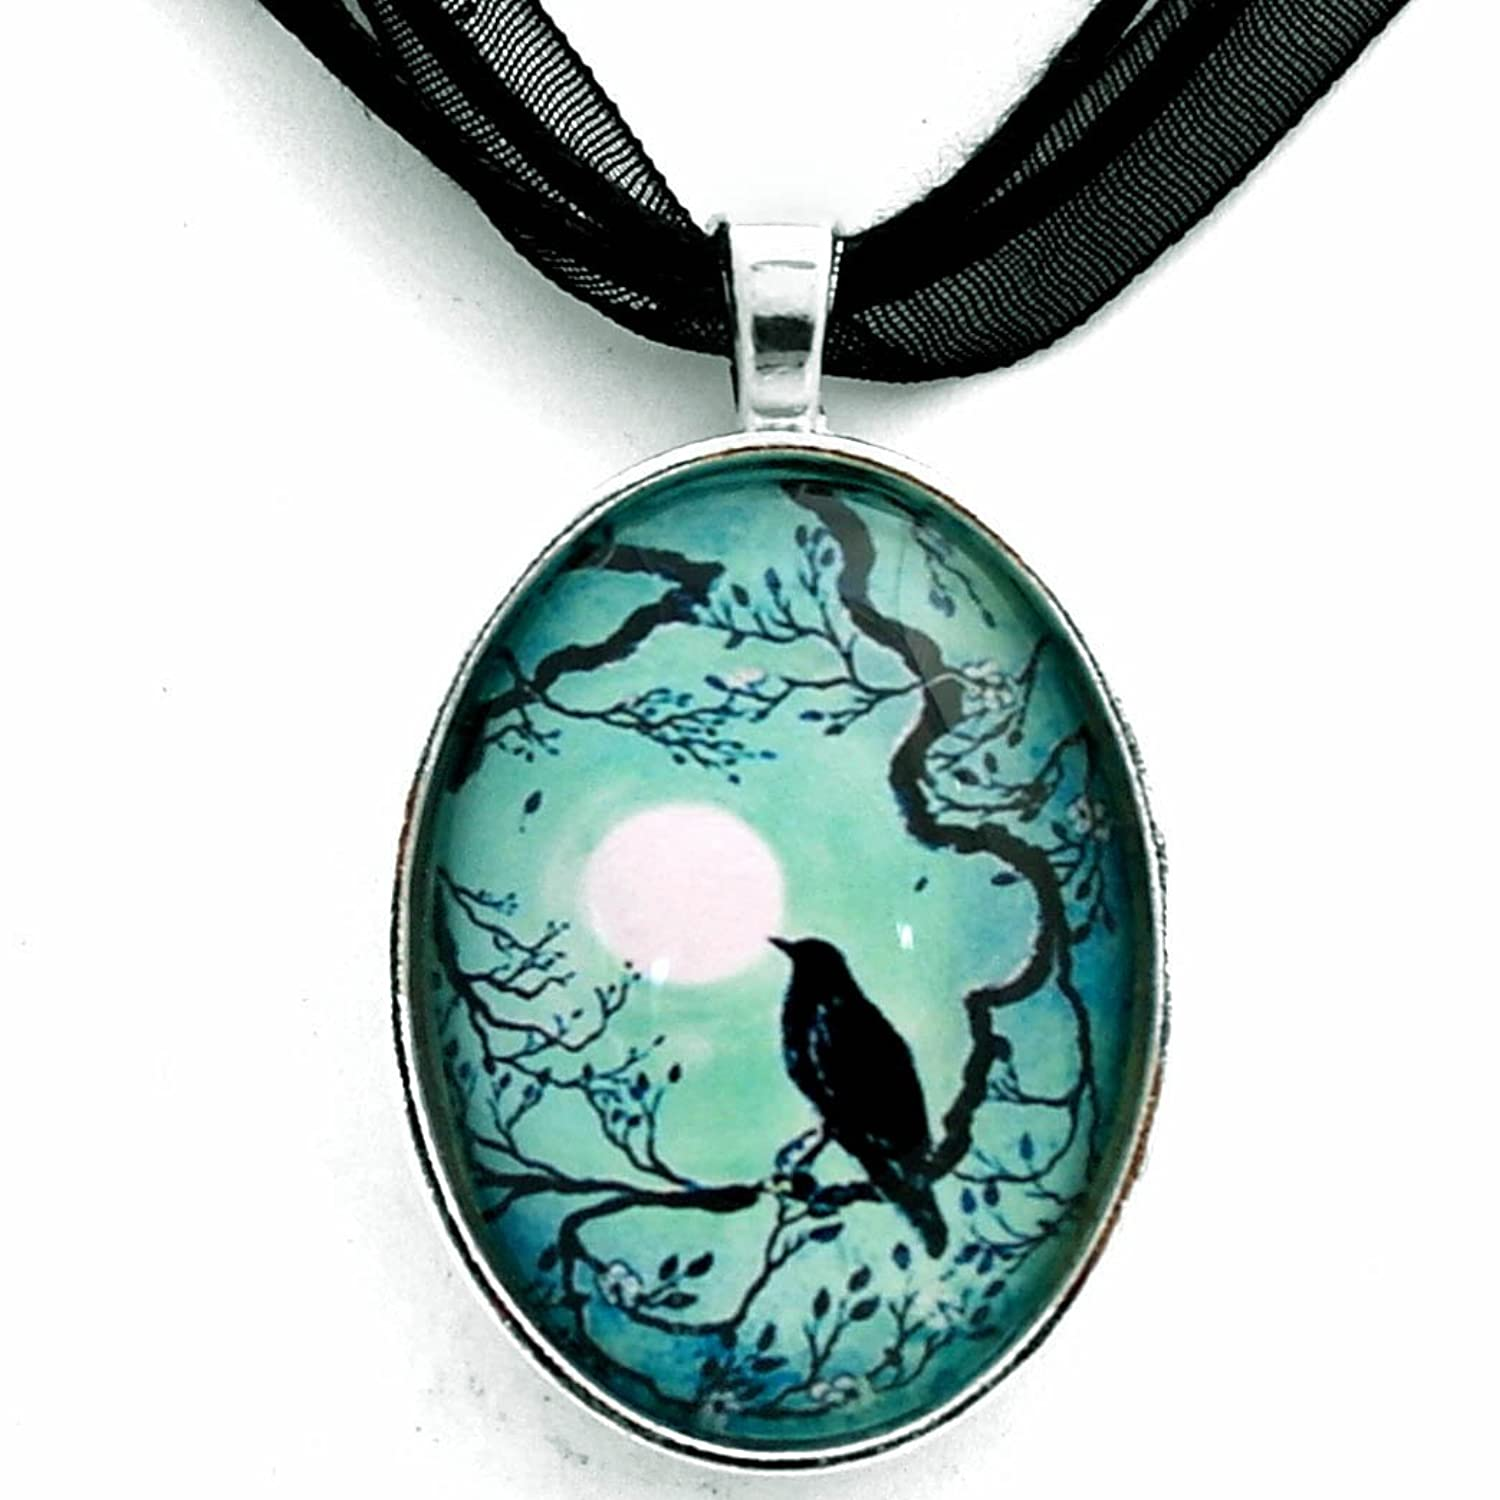 art gazing jolene necklace moon product mackie img